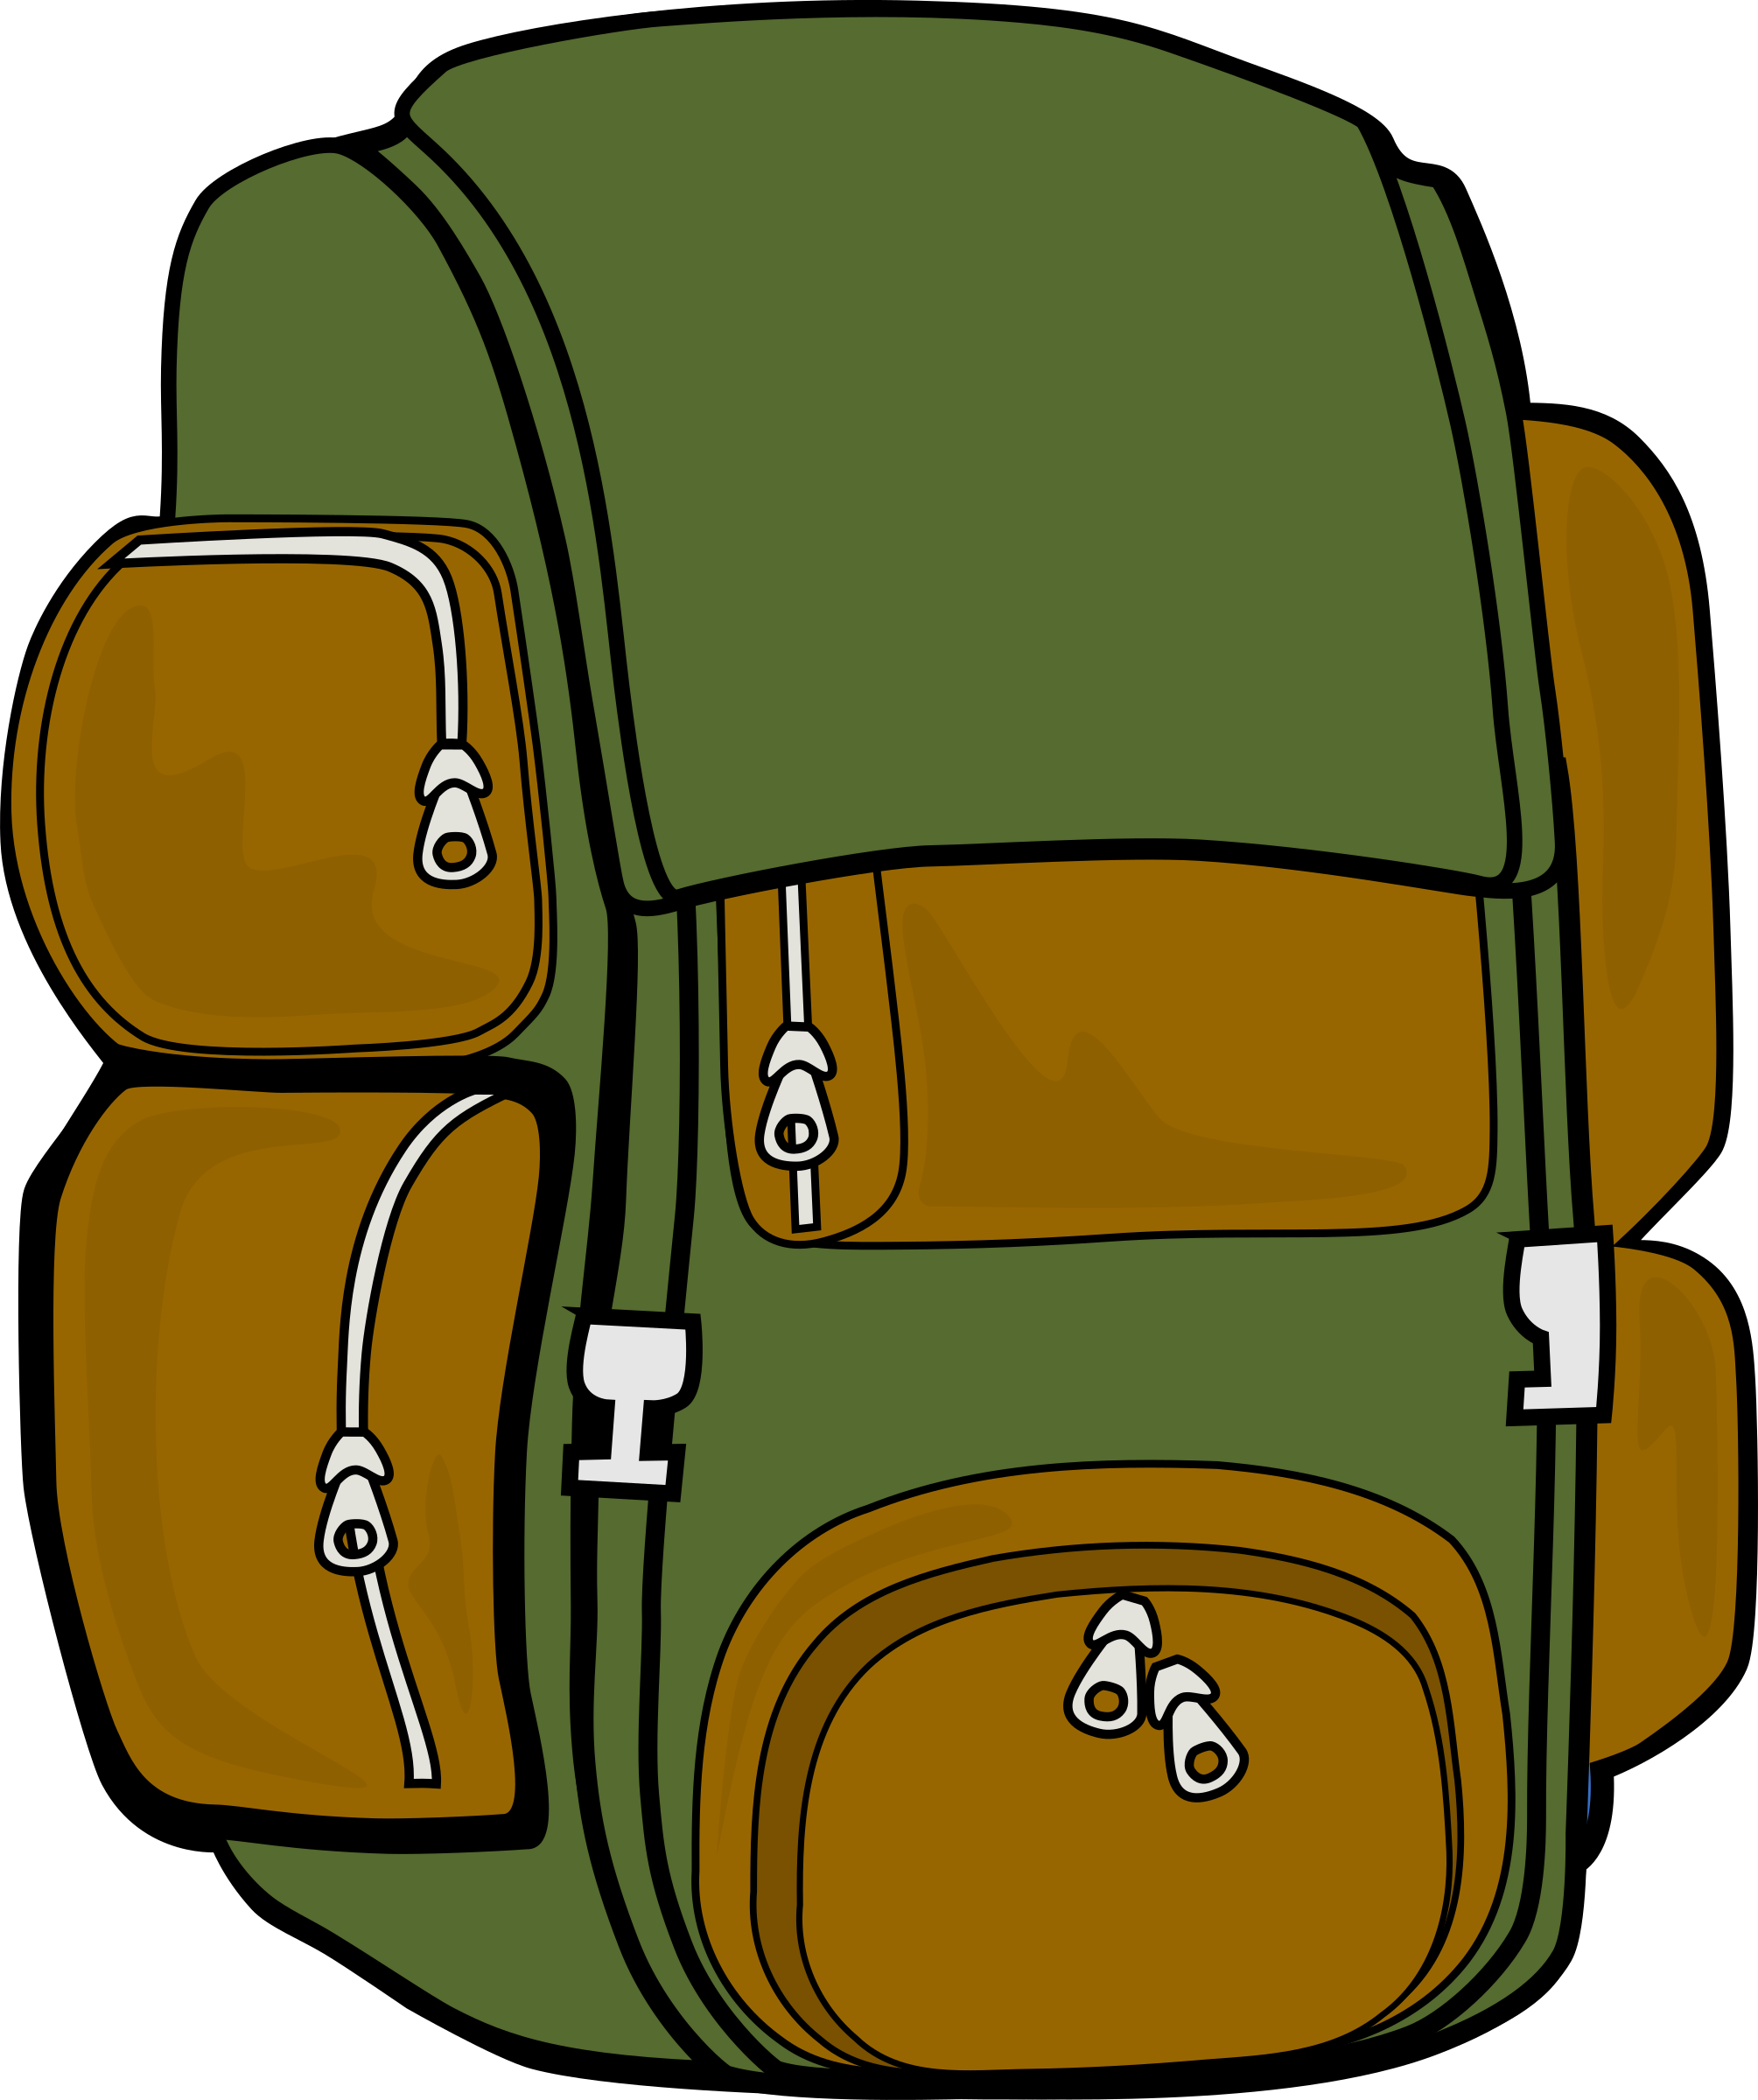 clipart backpack green brown rh openclipart org backpack clipart black and white backpacker clipart